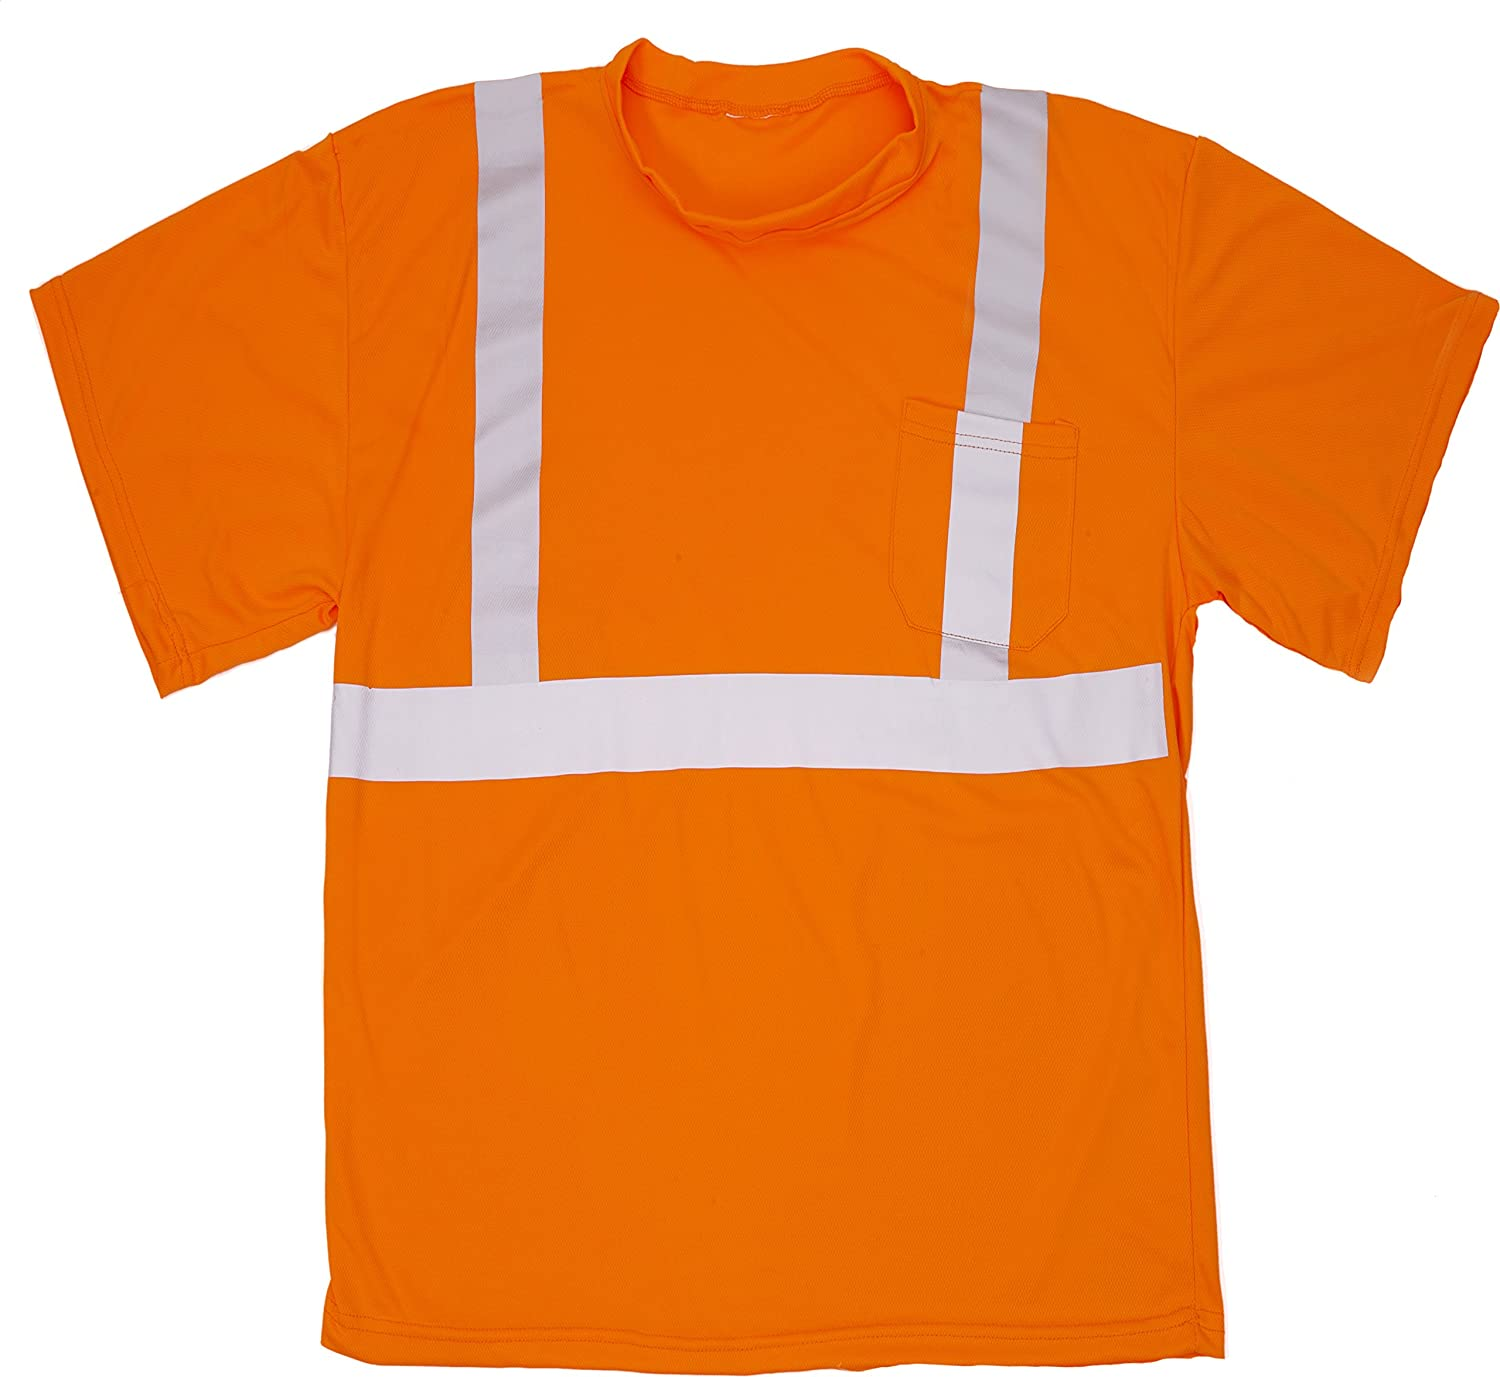 Orange XX-Large Mutual Industries 16357-1-5 High Visibility ANSI Class 2 Birdseye Mesh Tee with Chest Pocket and 2 Silver Reflective Tape